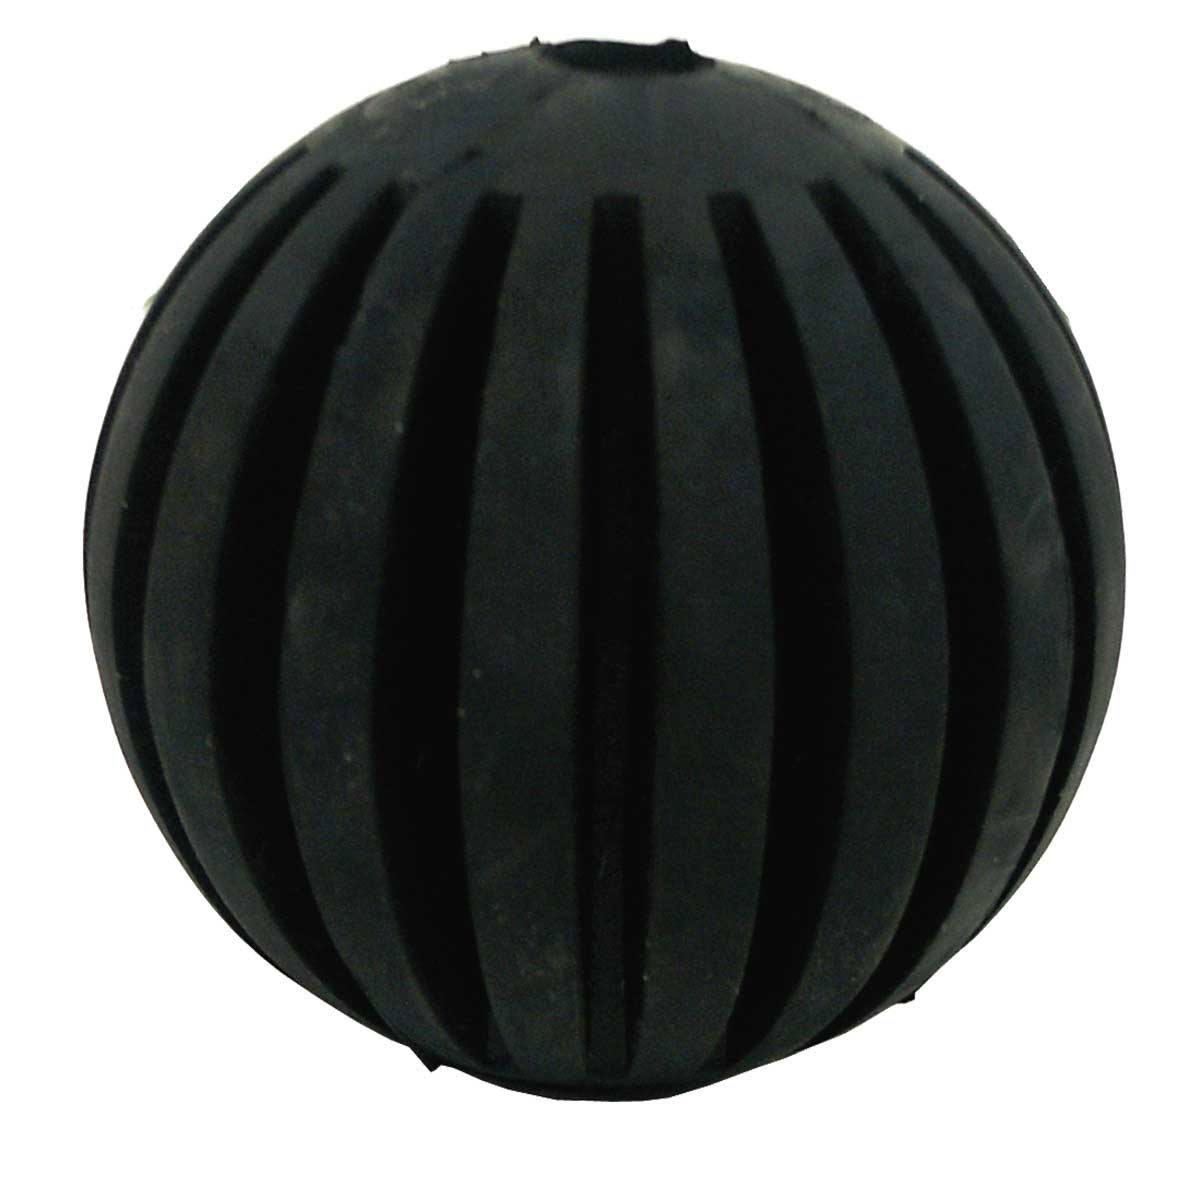 JW Tanzanian Mountain Ball Large 4.5 inch for Dogs